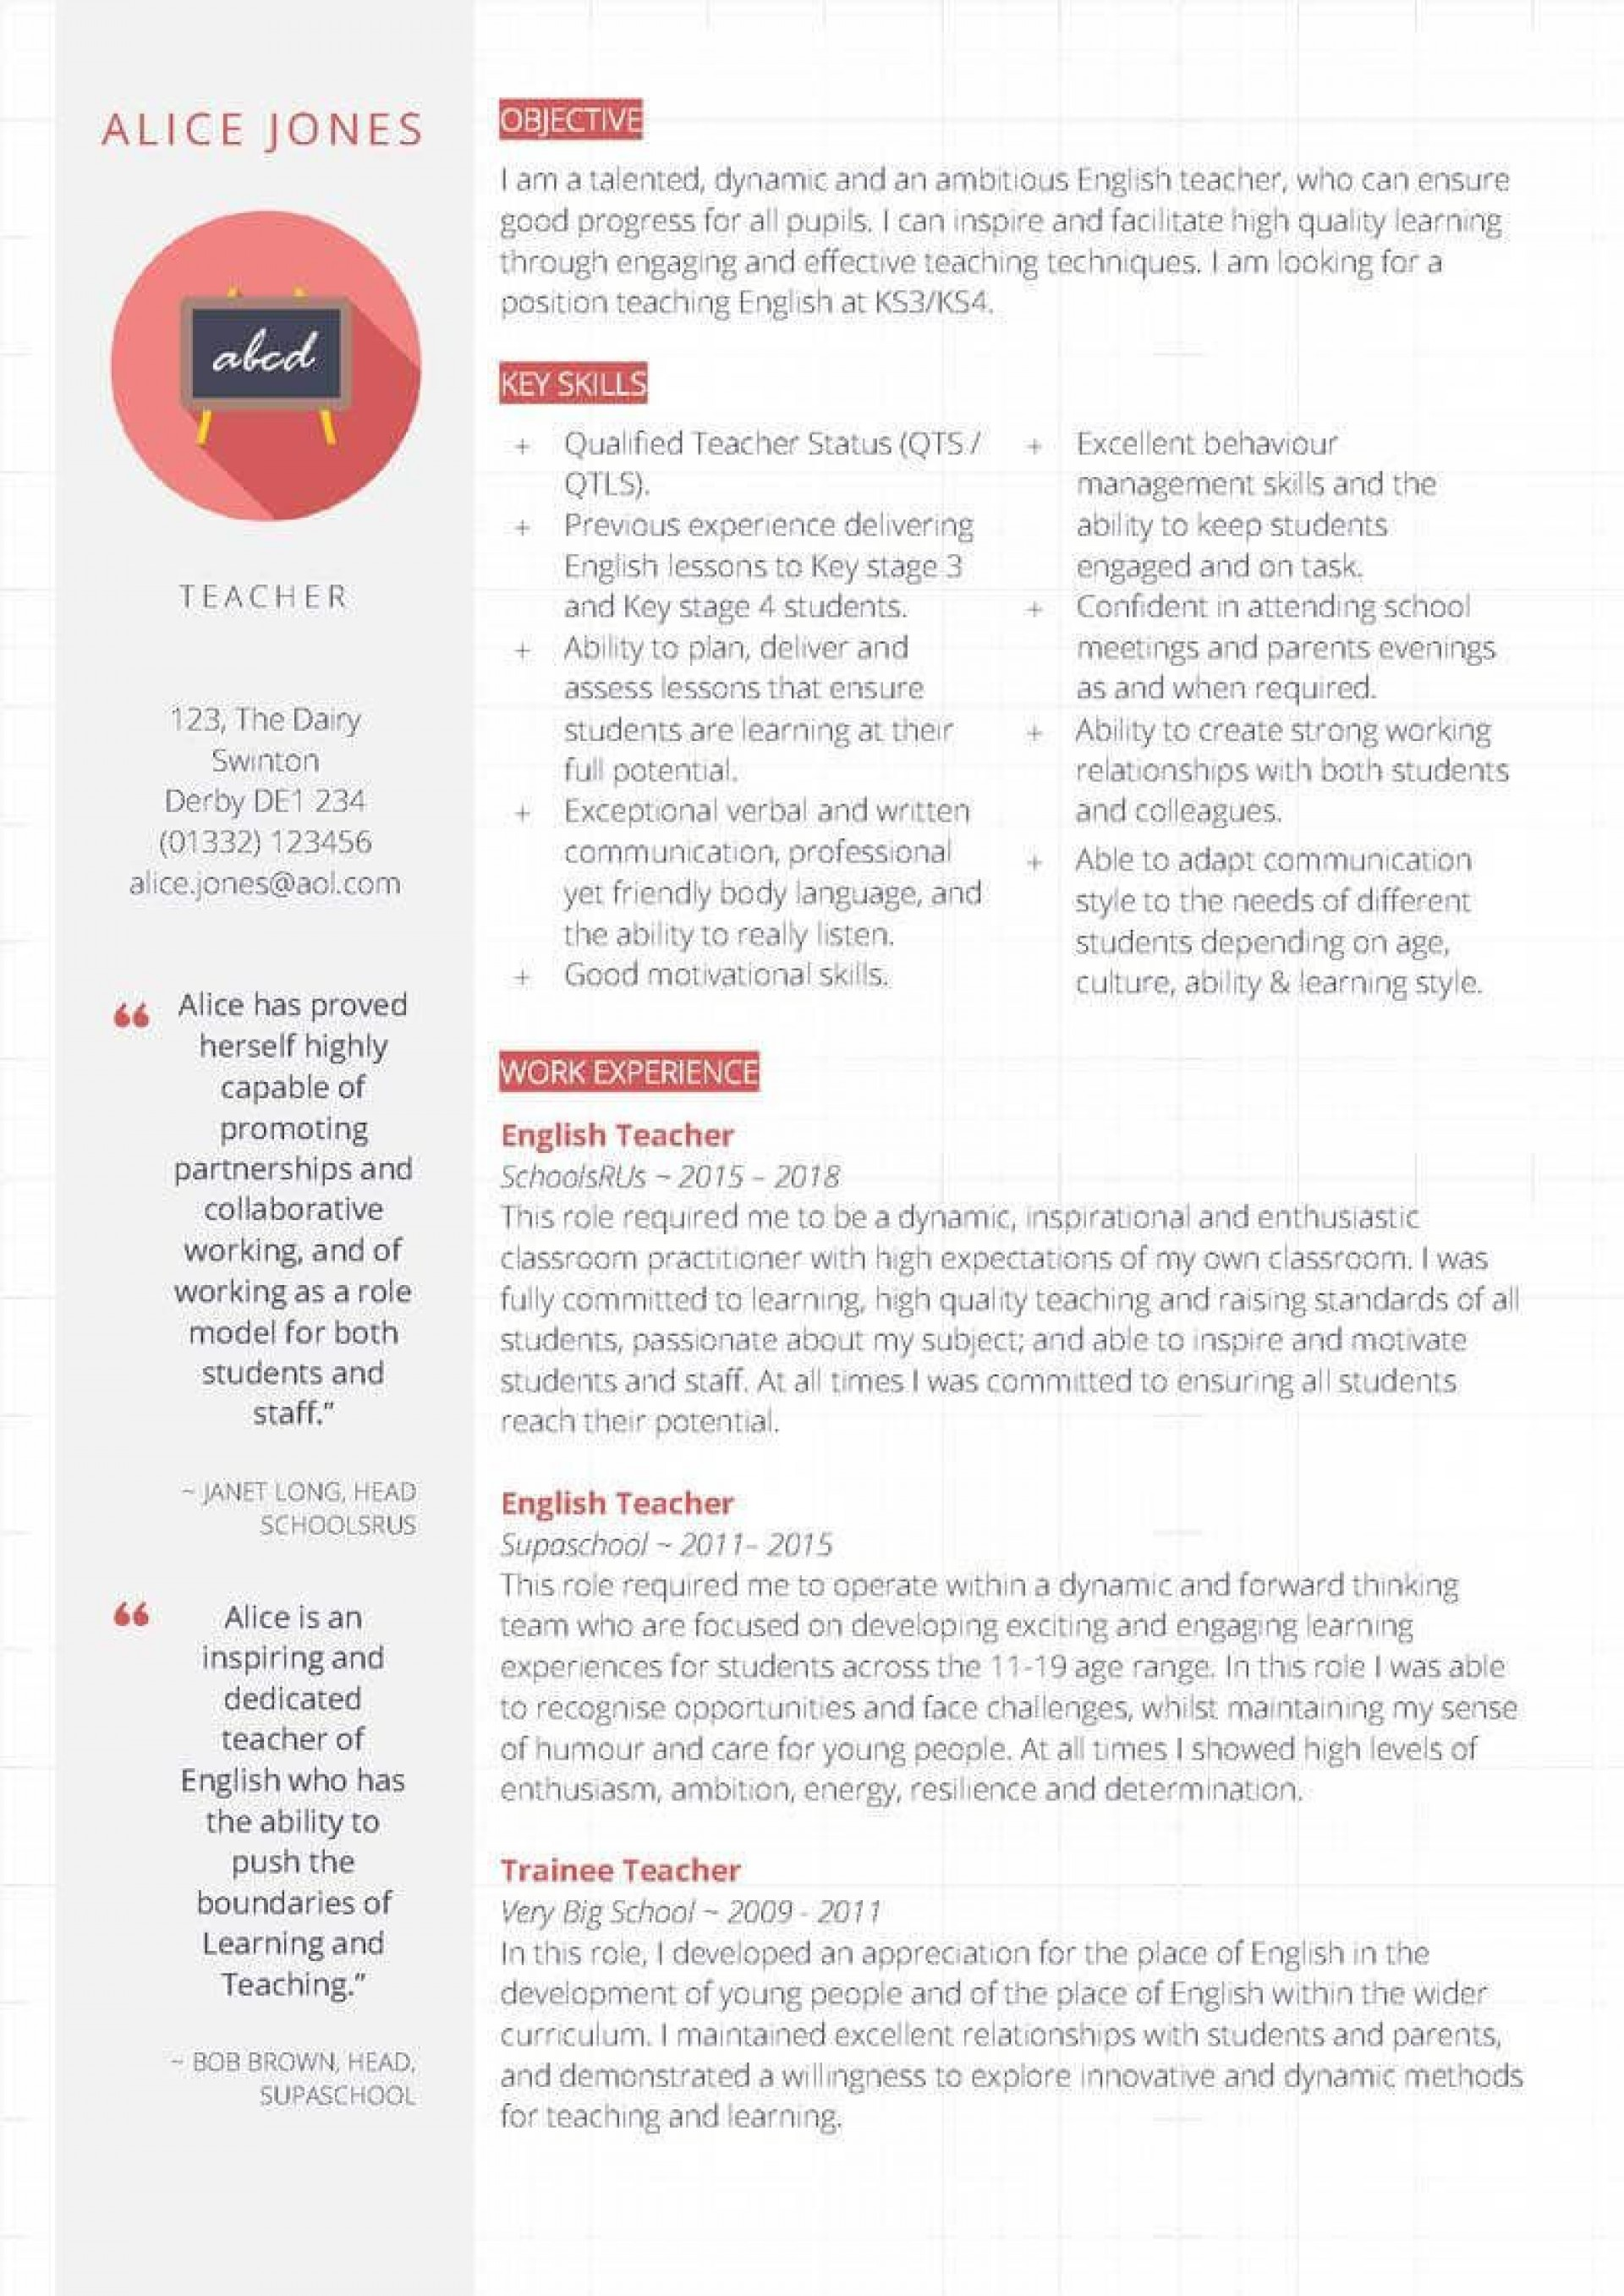 007 Magnificent Resume Template For Teaching Highest Quality  Cv Job Application Assistant In Pakistan1920